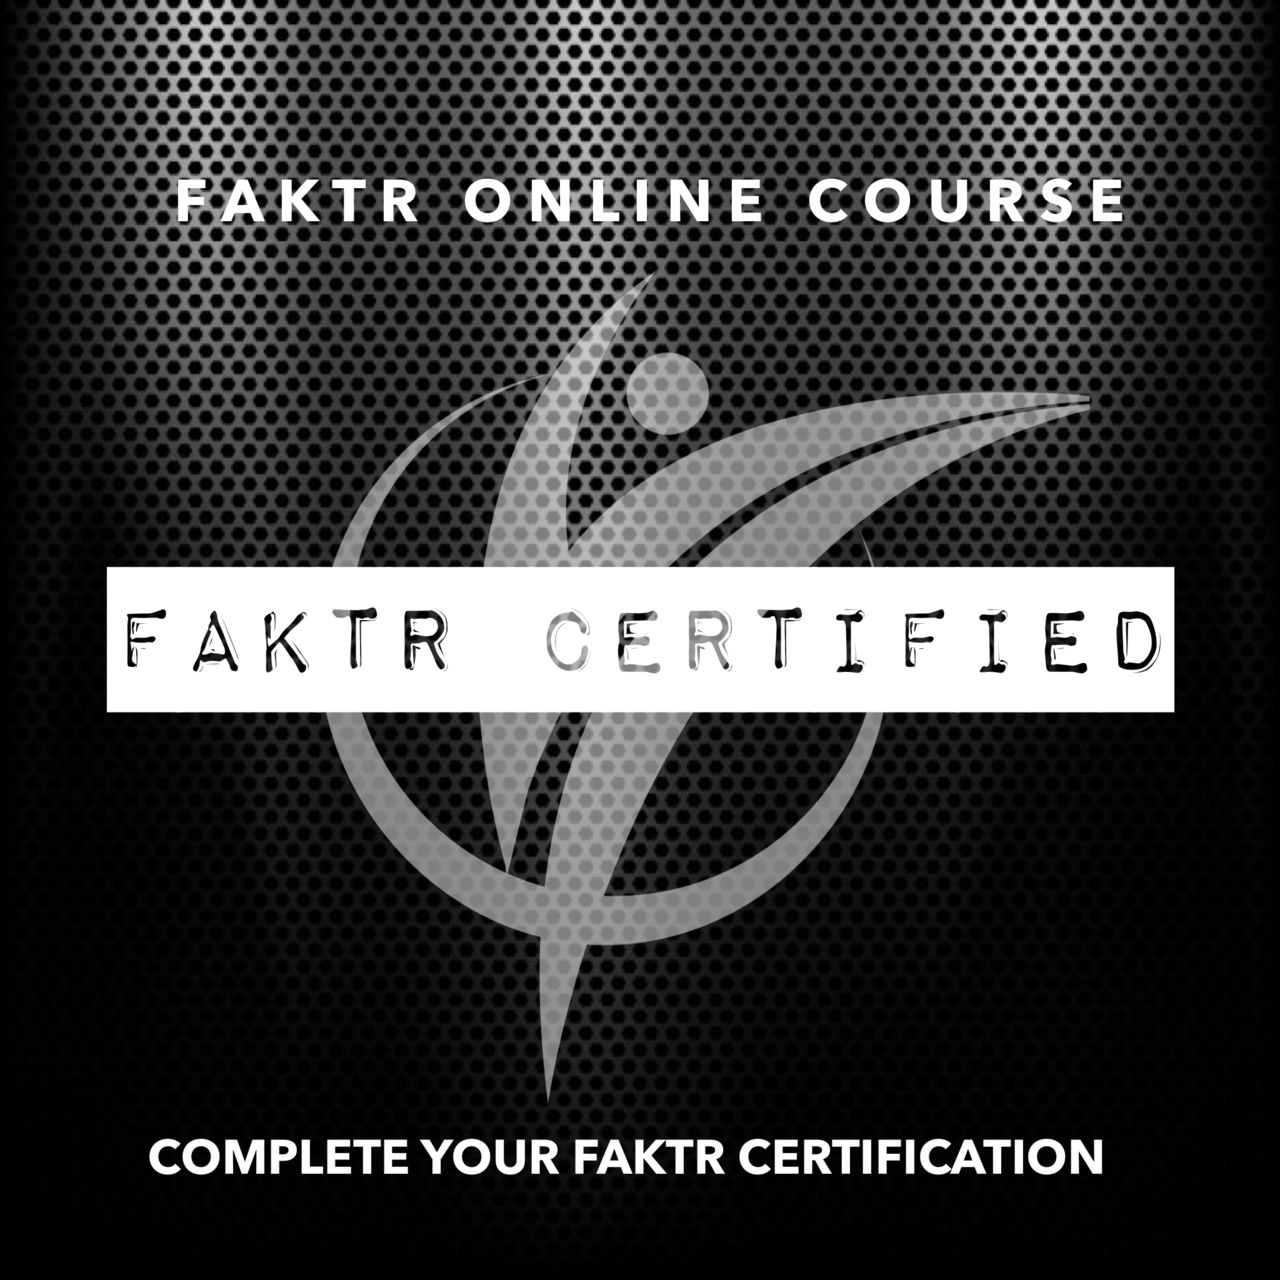 Complete your faktr certification and earn 65 ceu hours for many complete your faktr certification and earn 65 ceu hours for many professions newly formatted xflitez Gallery